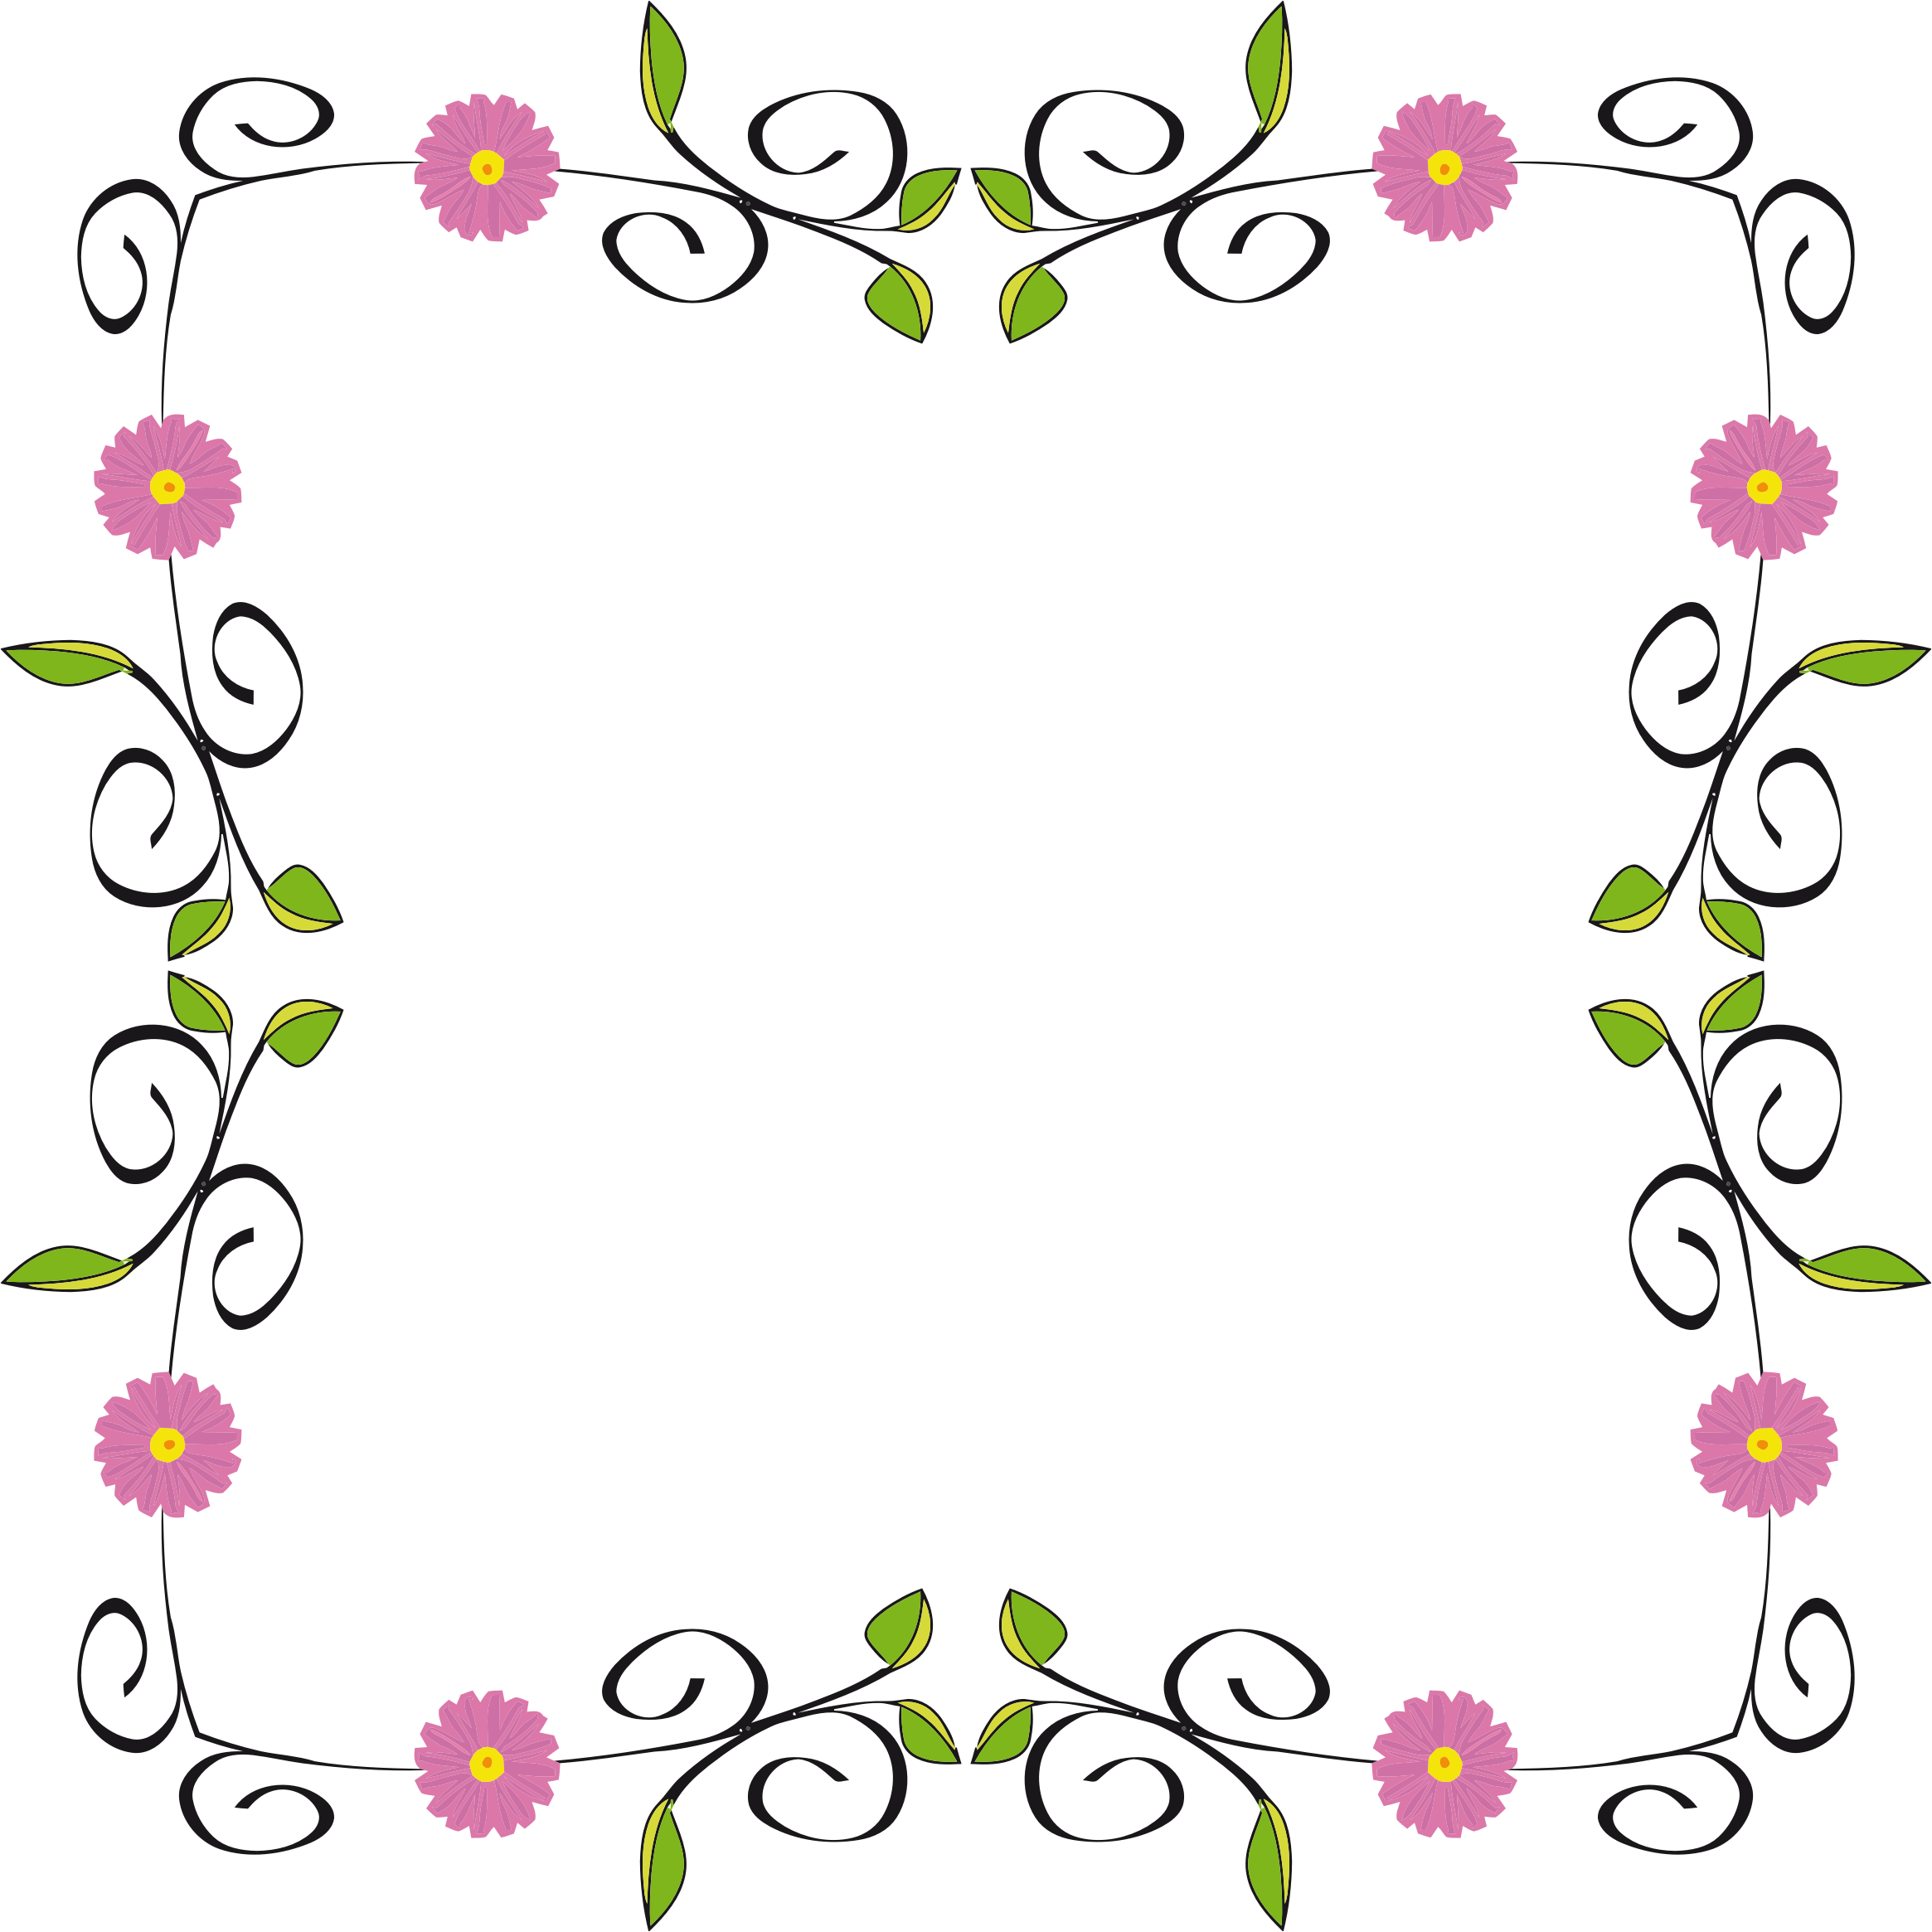 Floral borders png. Border extended icons free